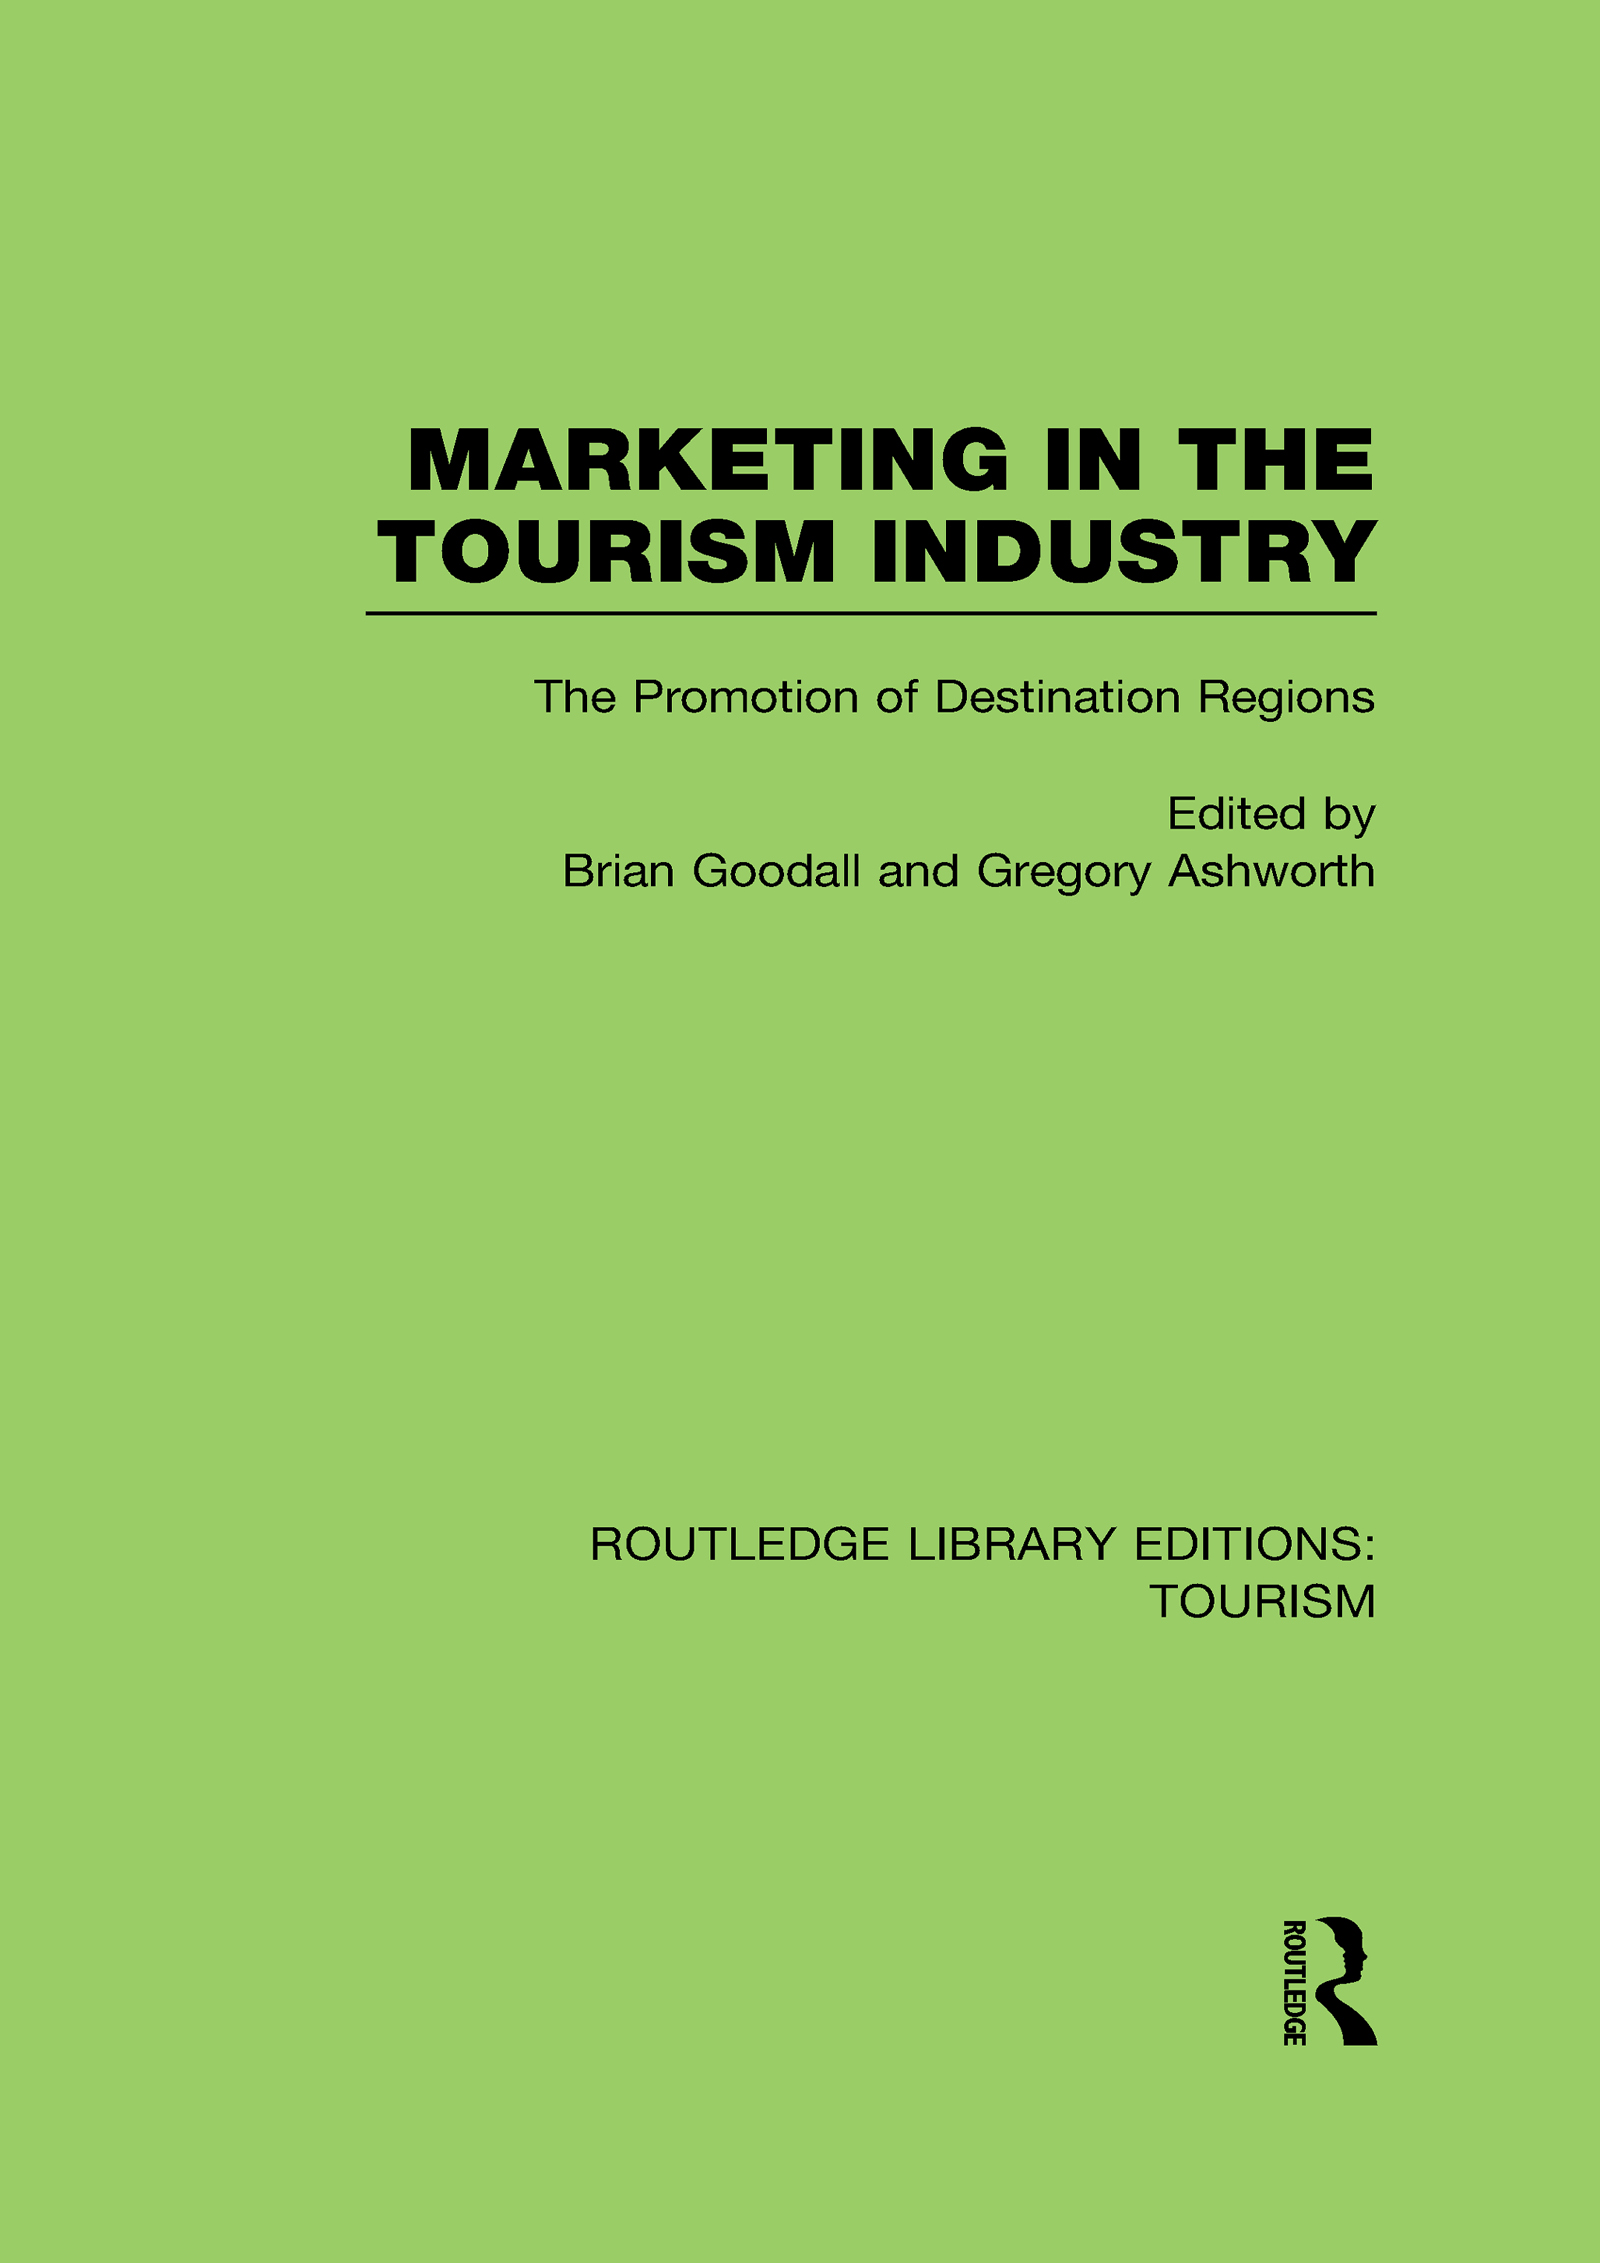 Routledge Library Editions: Tourism